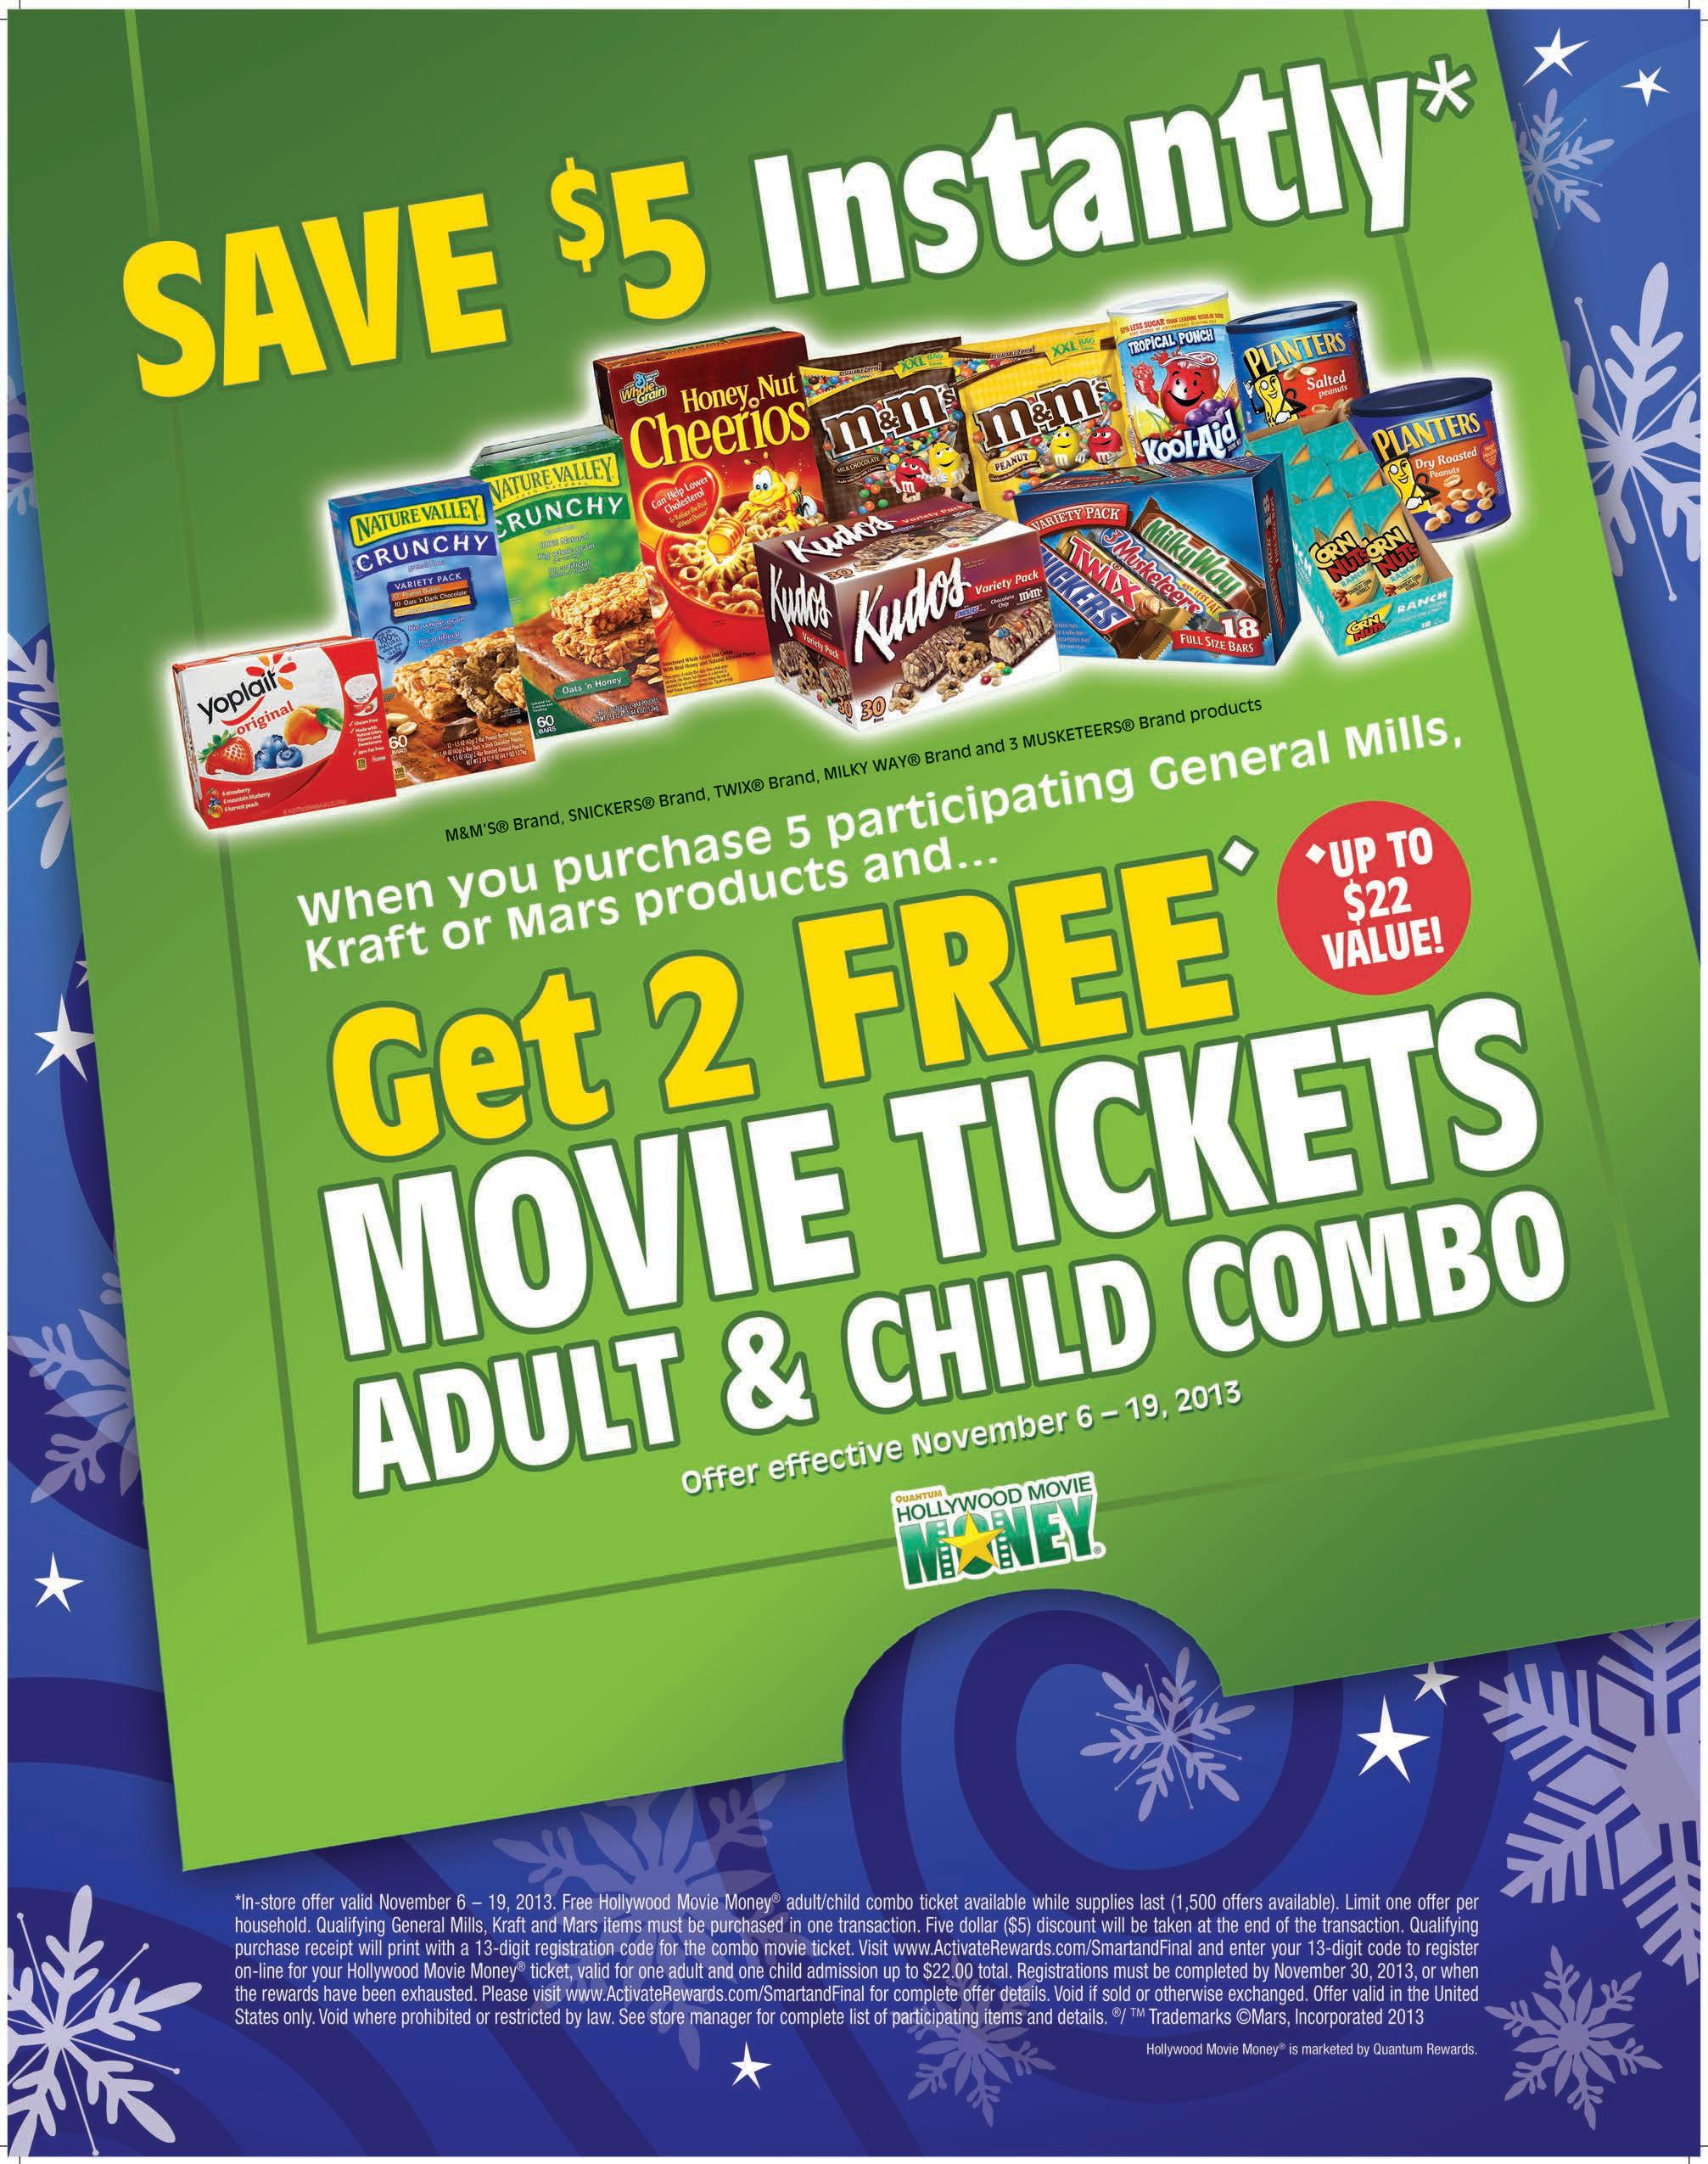 Save 5 and get a free movie ticket #choosesmart #shop